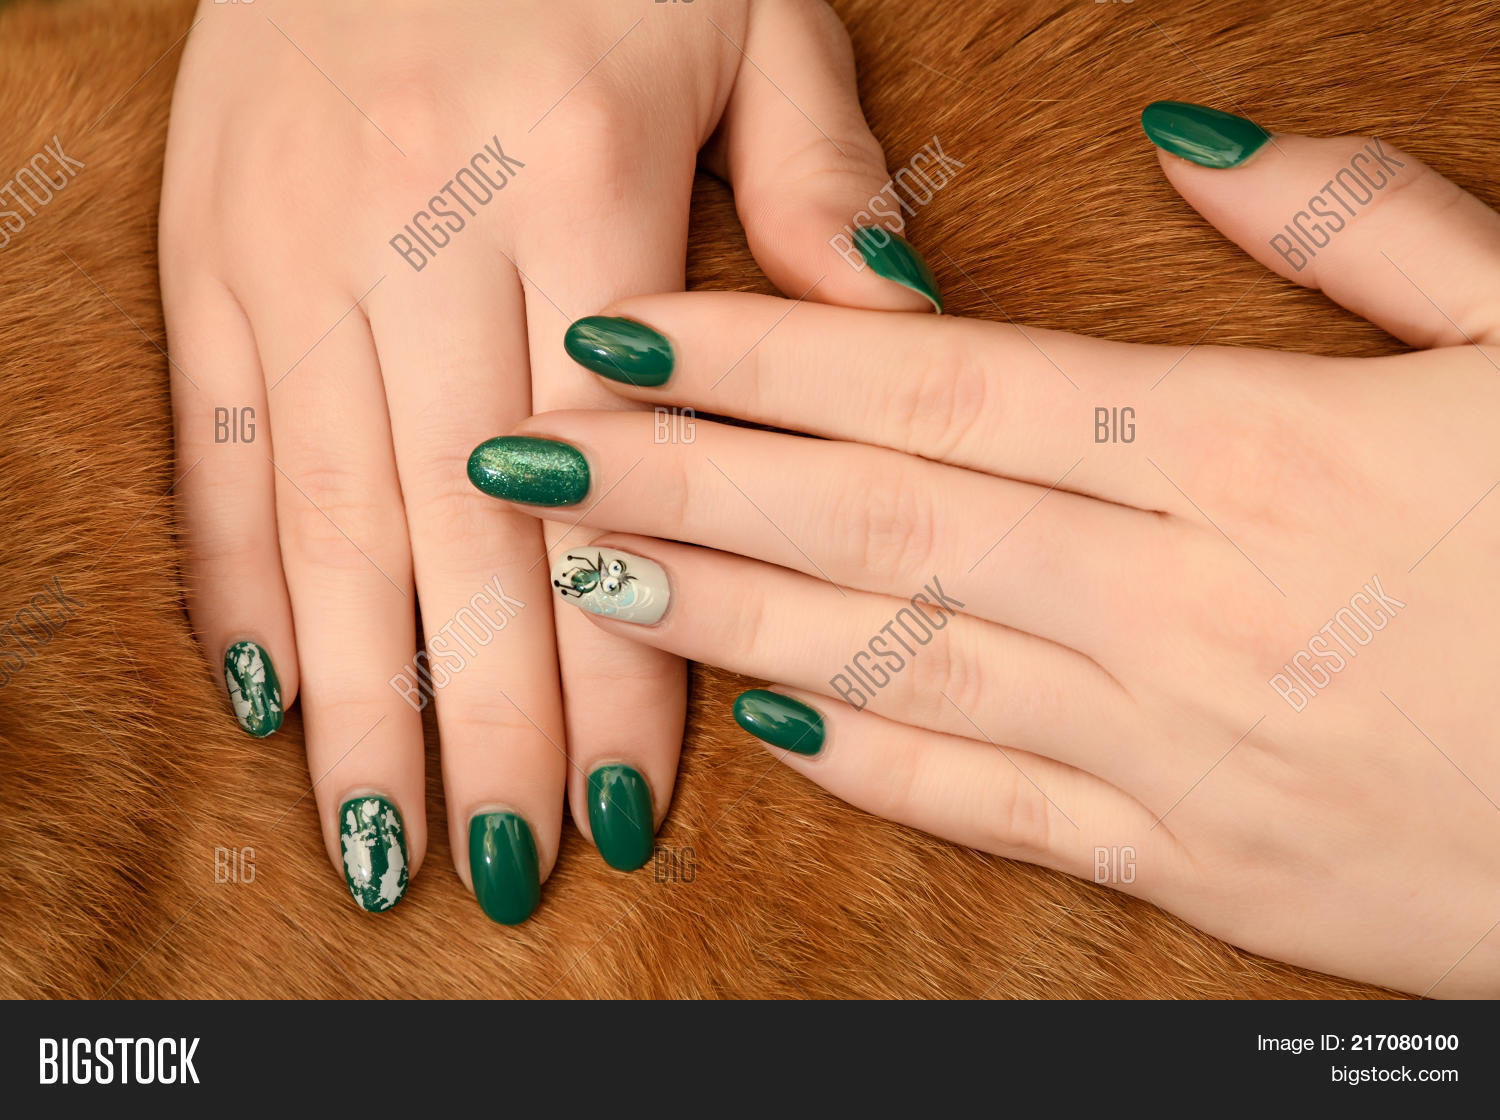 Graft Nails Design French Manicure Image & Photo | Bigstock